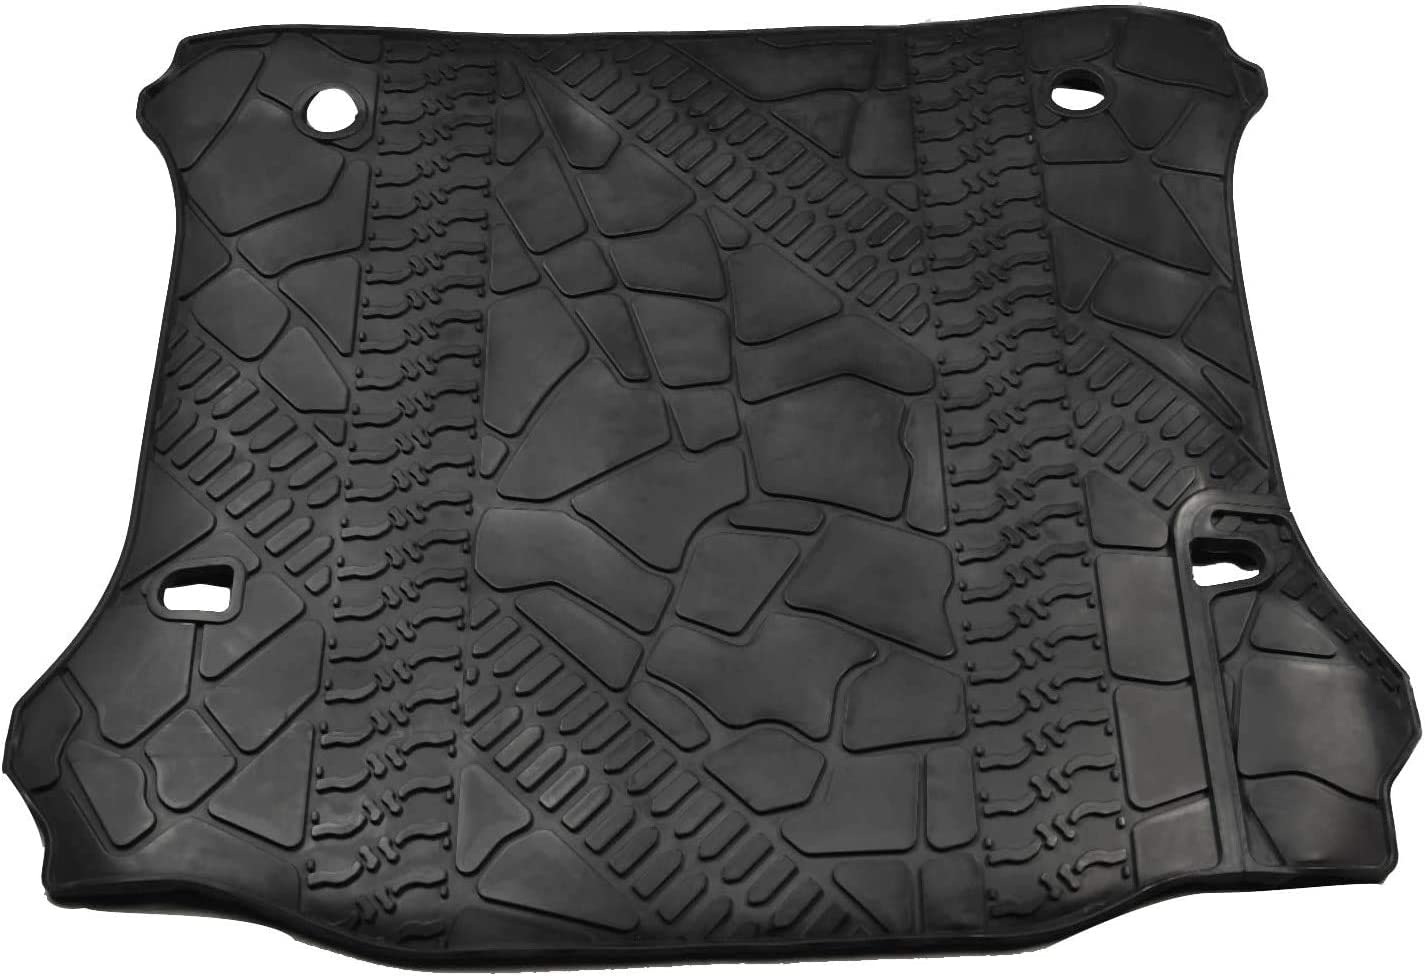 NovelBee Cargo Liner Rear Trunk Floor Mat Fit for 2012-2018 Jeep Wrangler JK Unlimited JKU Without Subwoofer and Only for 4 Door